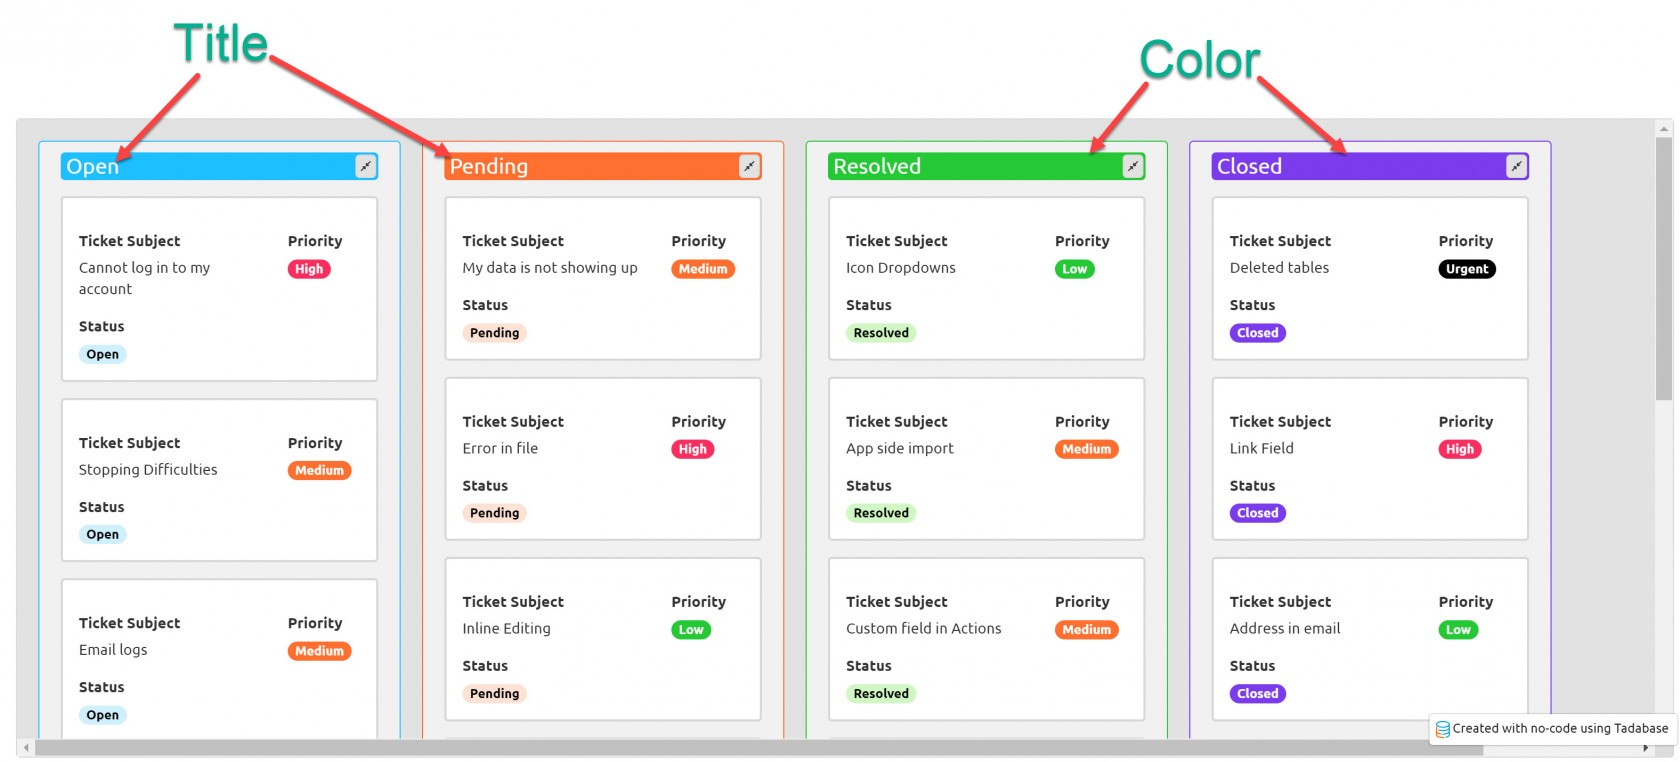 Kanban-Color-and-TItle.jpg